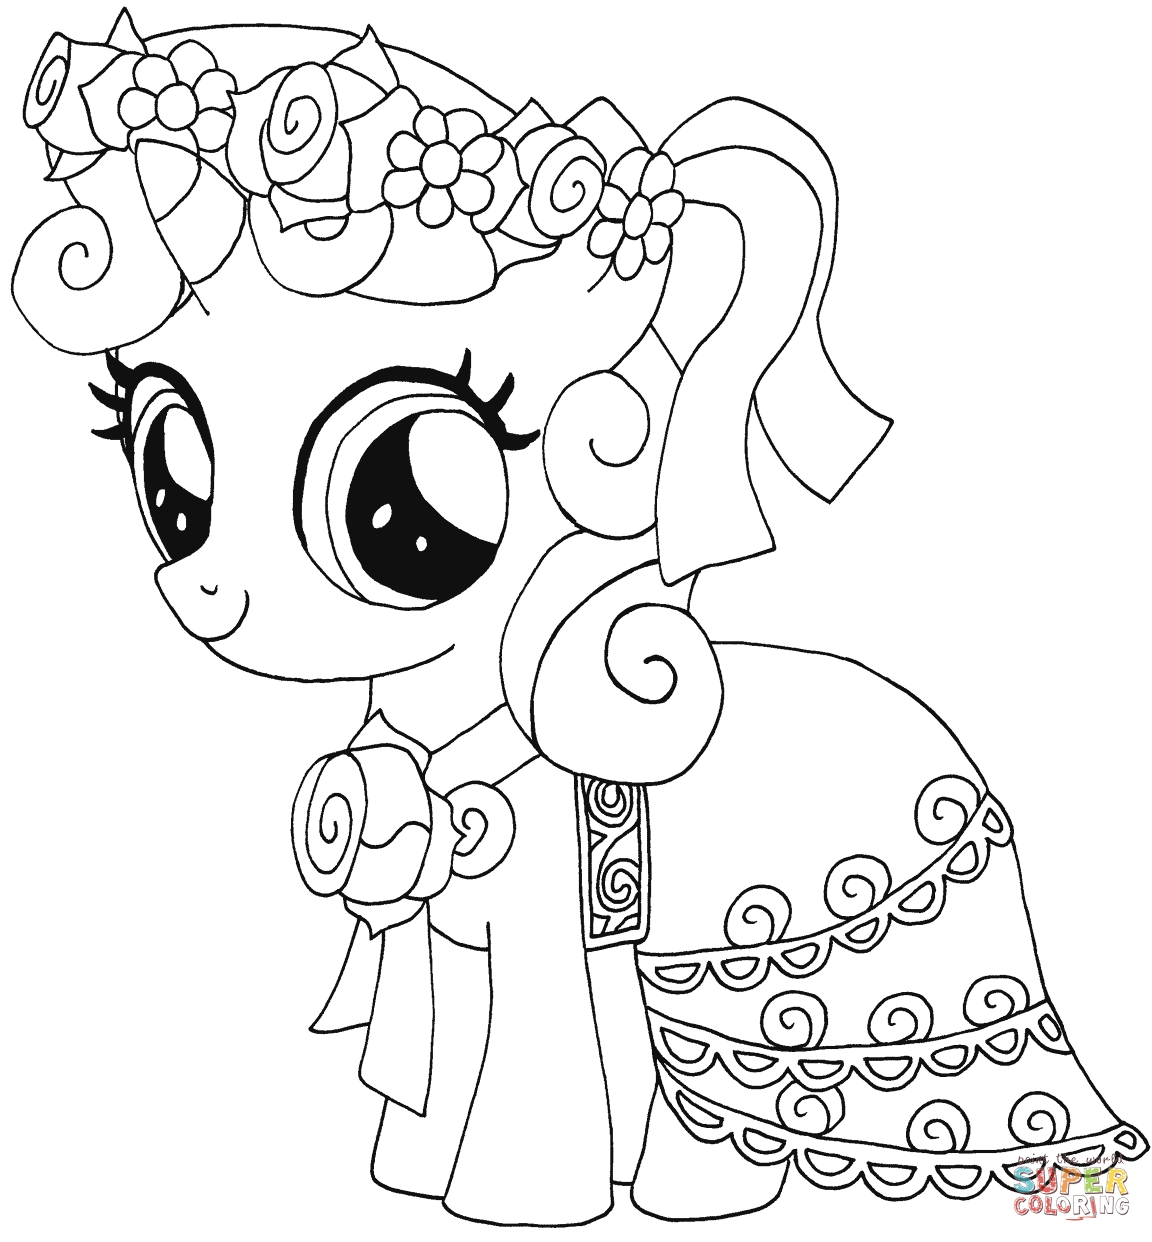 little pony coloring pages - my little pony sweetie belle